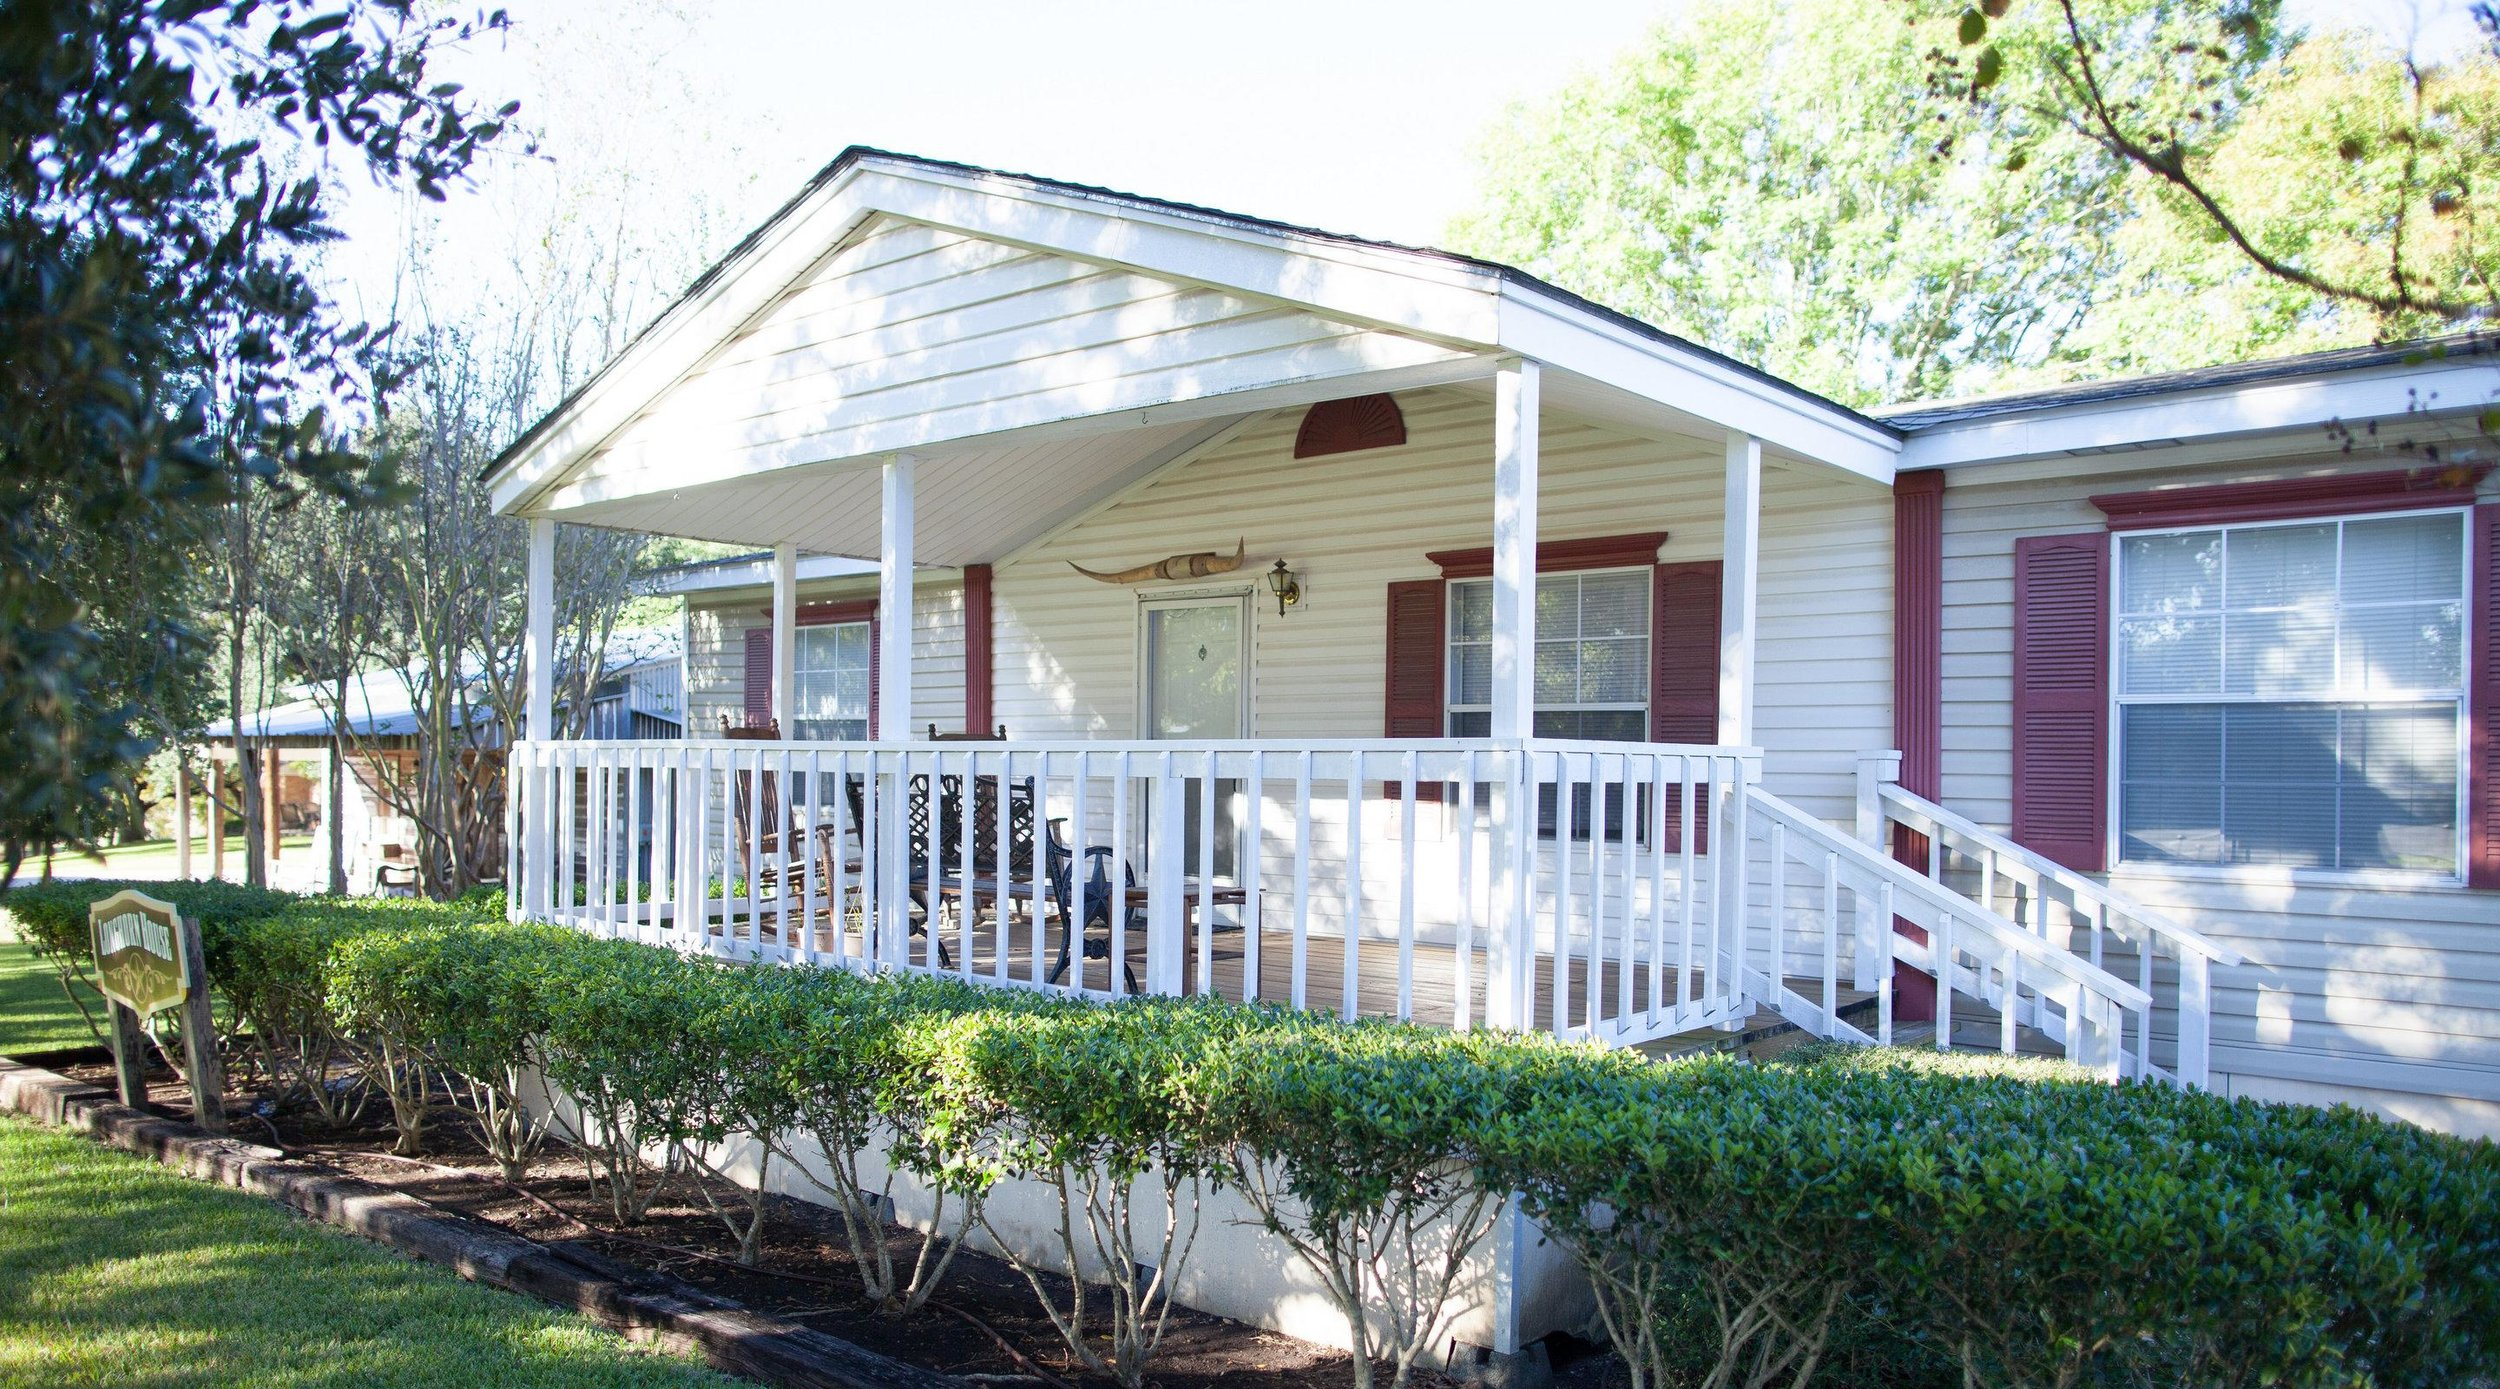 Longhorn Cottage - Entire house · 3 bedsLonghorn Cottage has 3 bedrooms, 2 baths, a large living room, kitchen, dining room, and a covered front porch with rocking chairs for your enjoyment. Longhorn is a good fit for small, close-knit groups getting together. [Accommodates 3-6 people]